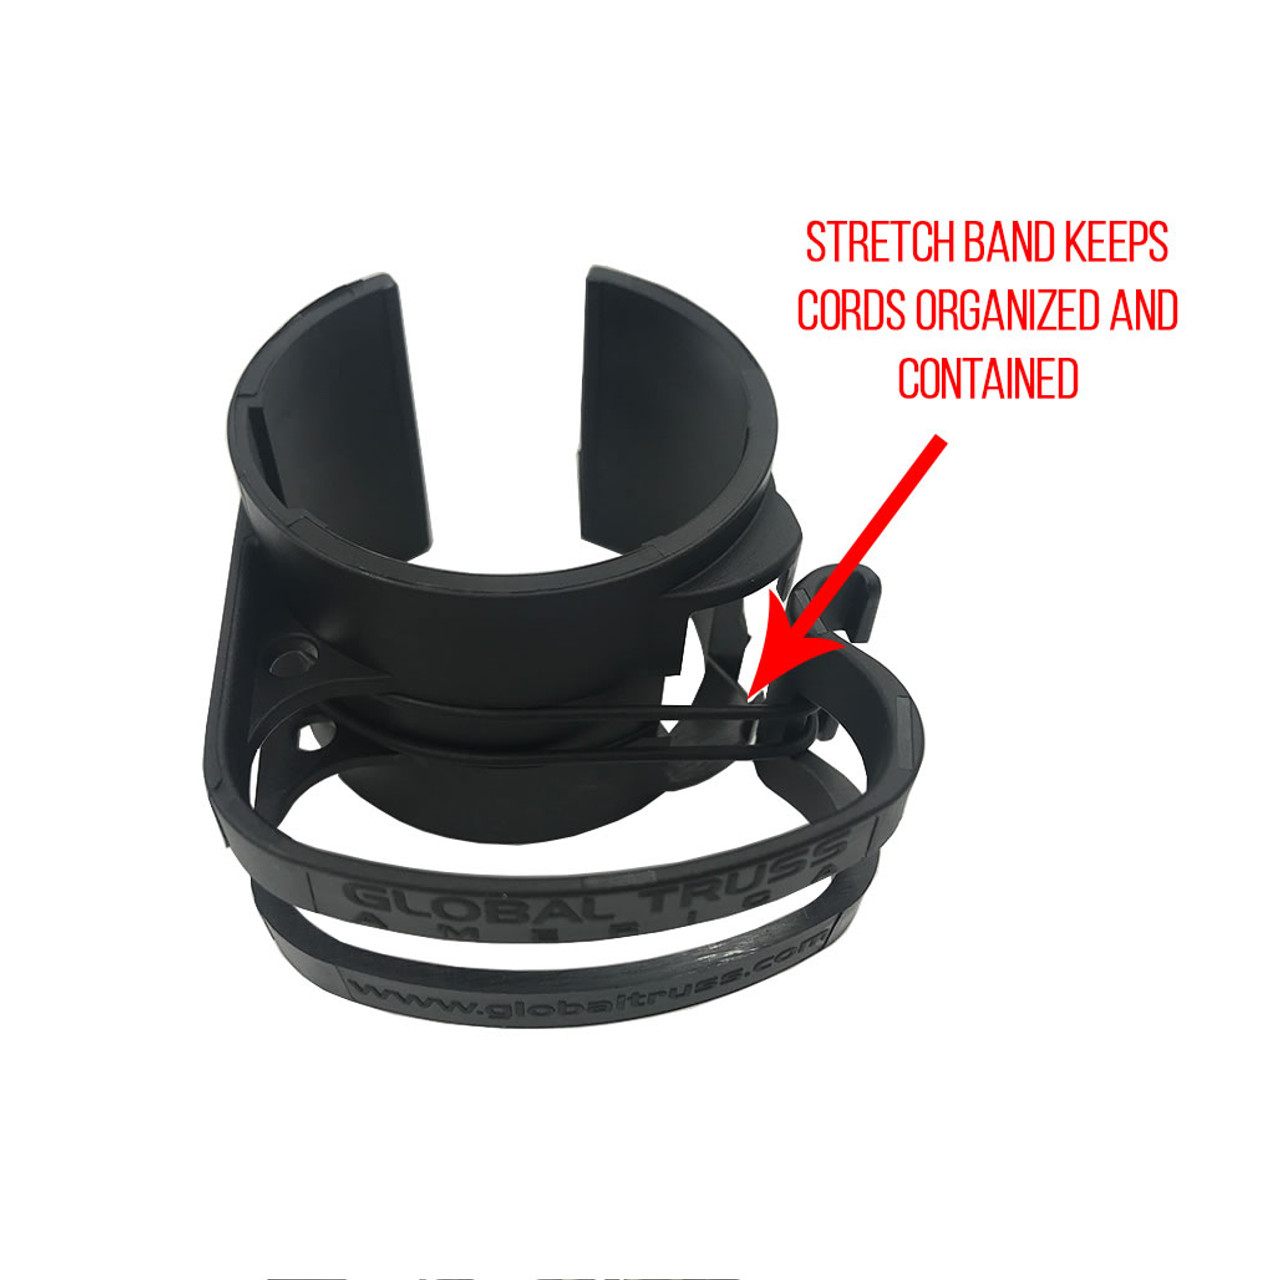 Global Truss DT Snap On Black Cable Management Clip- Stretch Band Keeps Cords Organized and Contained.